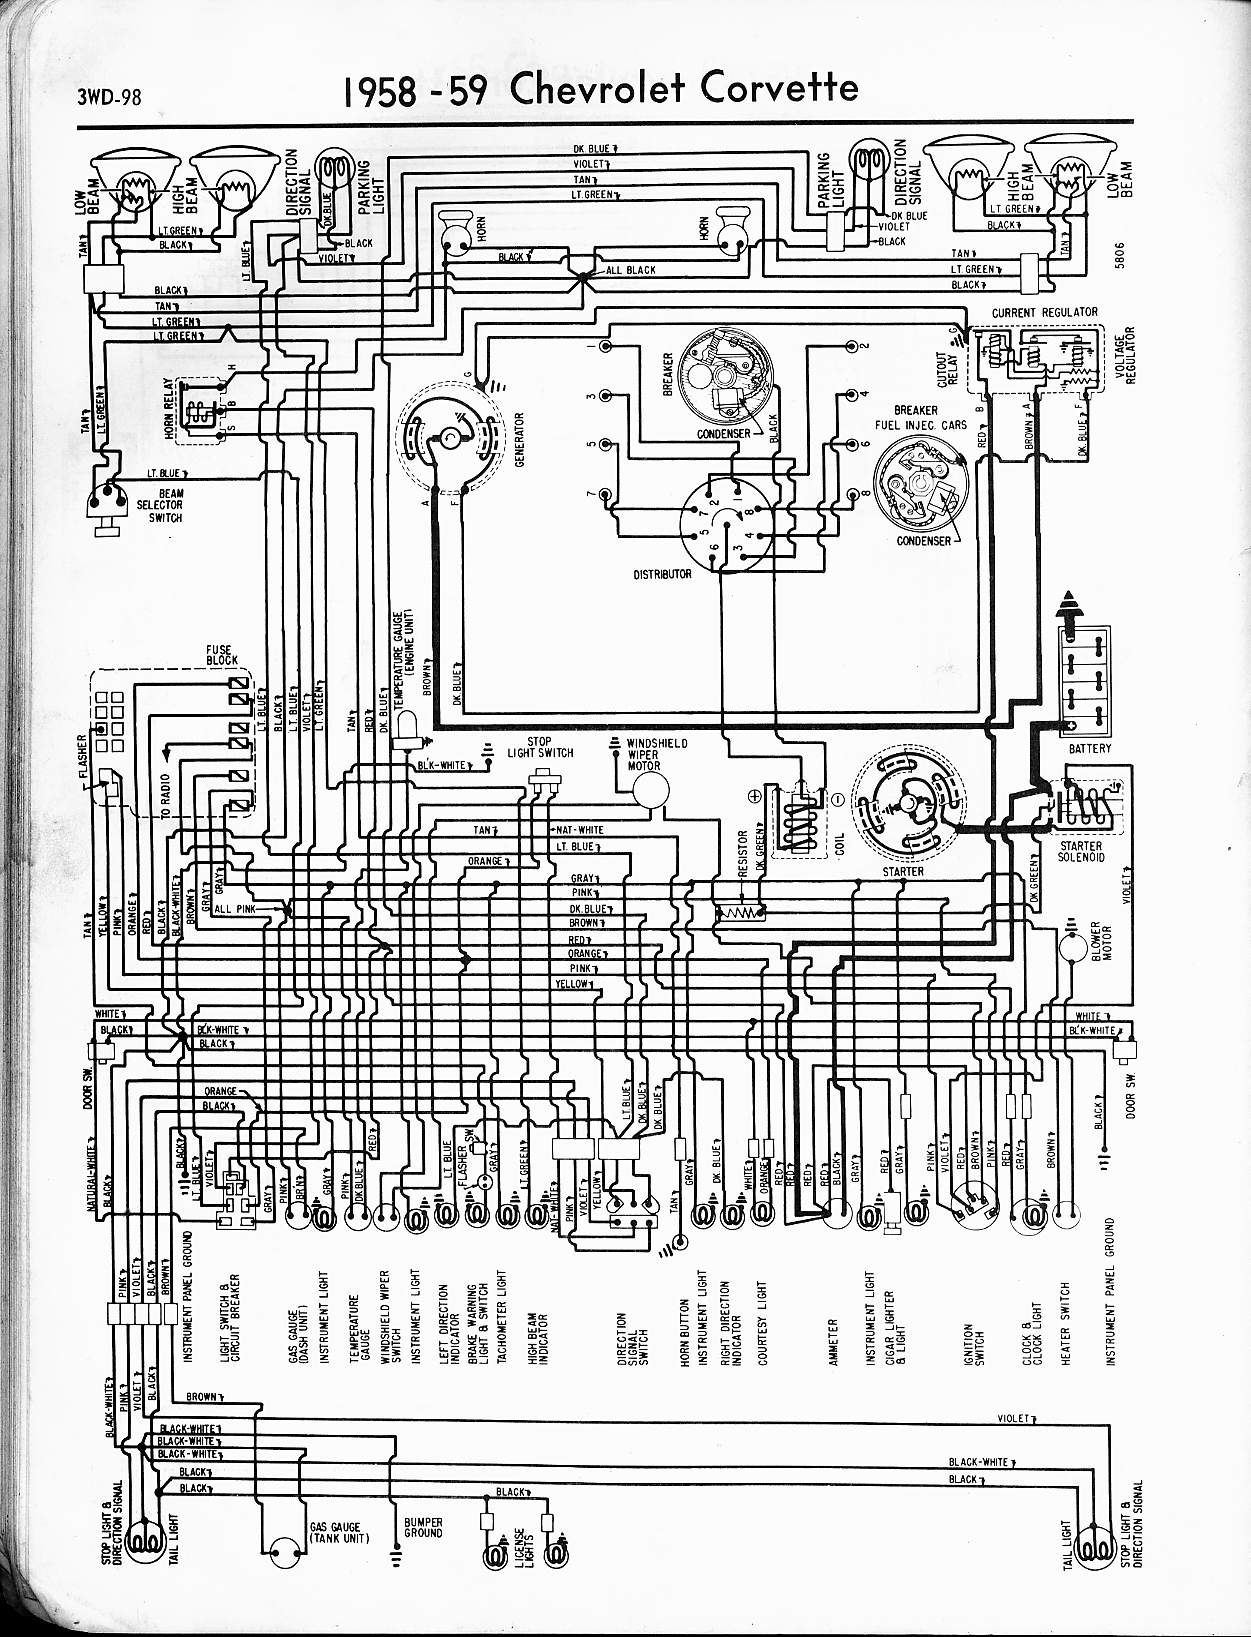 Chevy Alternator Wiring Diagram 1968 C10 Library Chevrolet 1960 Impala With Starting Know About 4 Wire 65